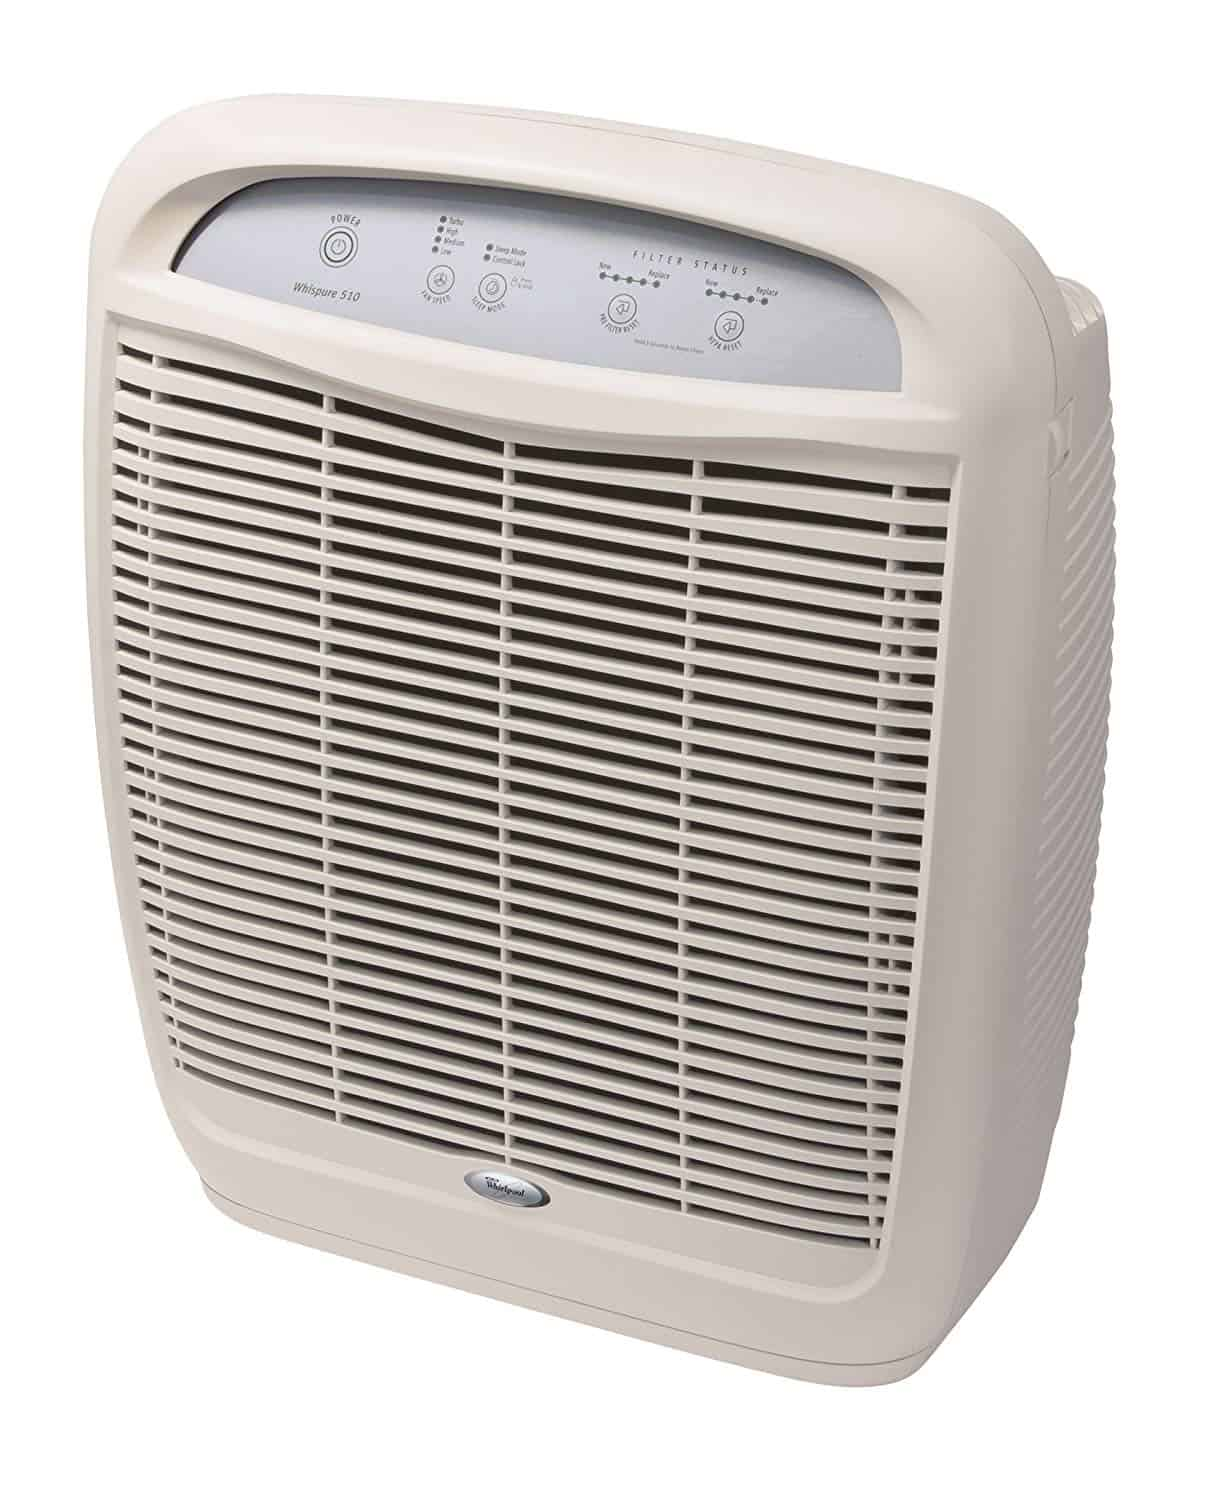 Whirlpool Whispure Air Purifier 510